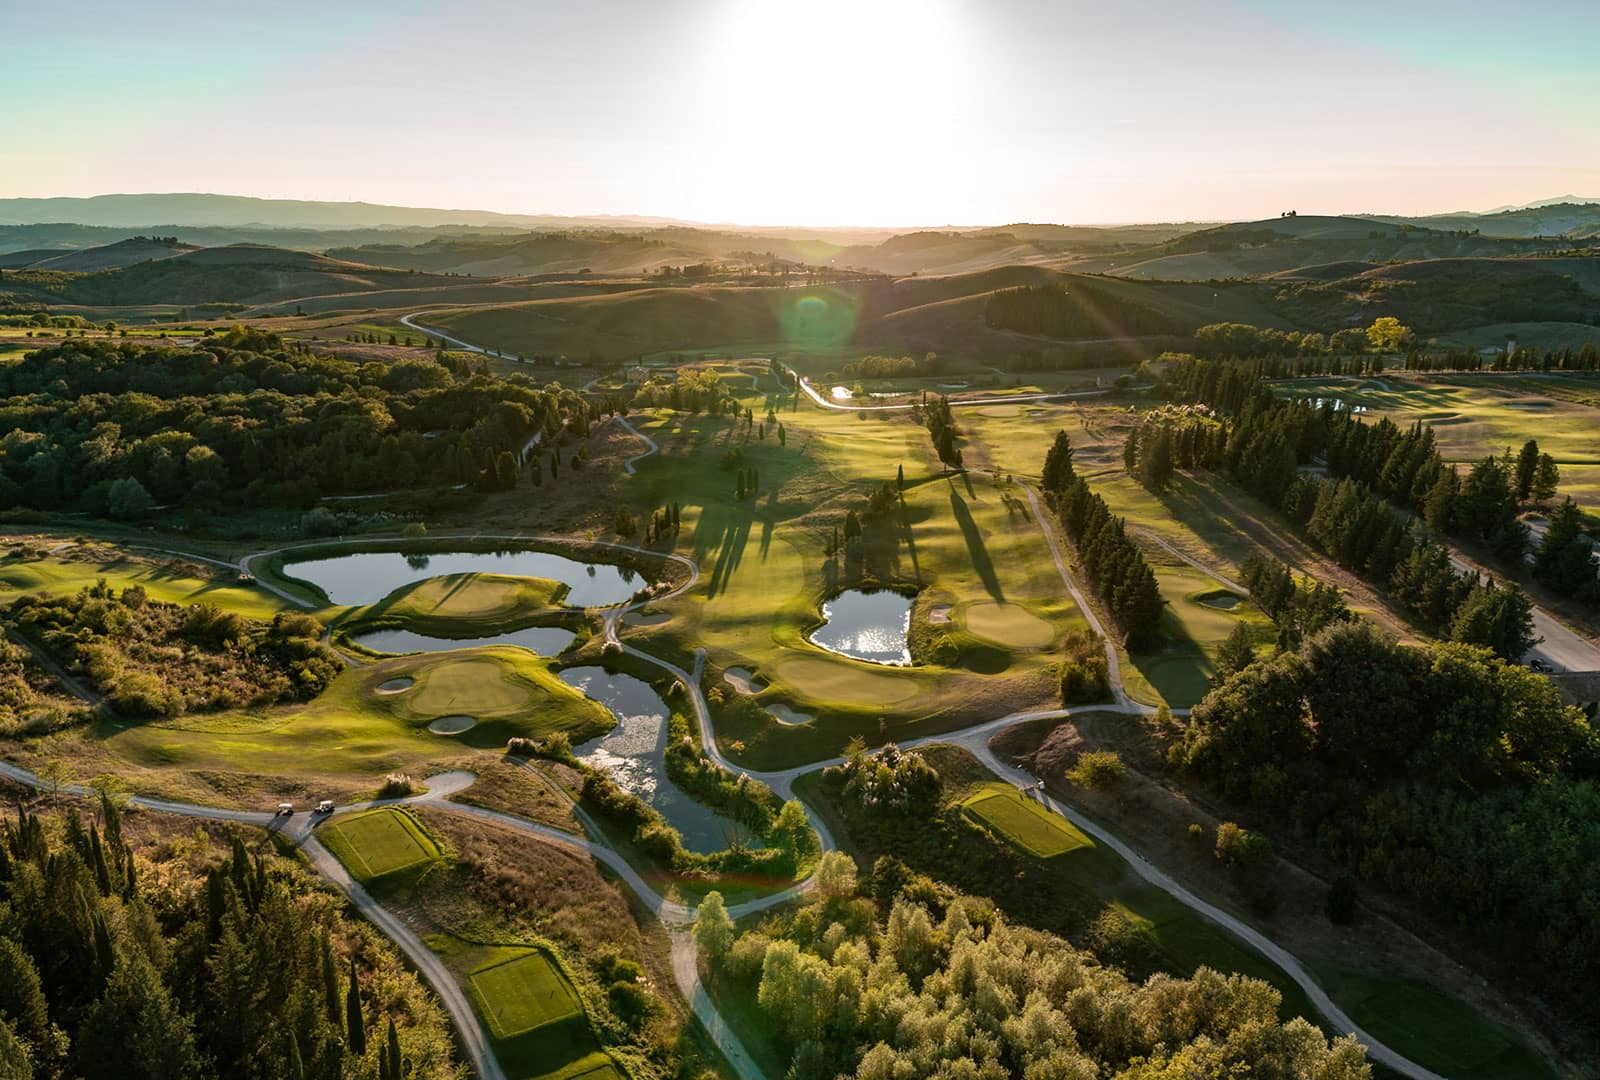 Aerial view of the biggest Golf Course in Tuscany. Toscana Resort Castelfalfi